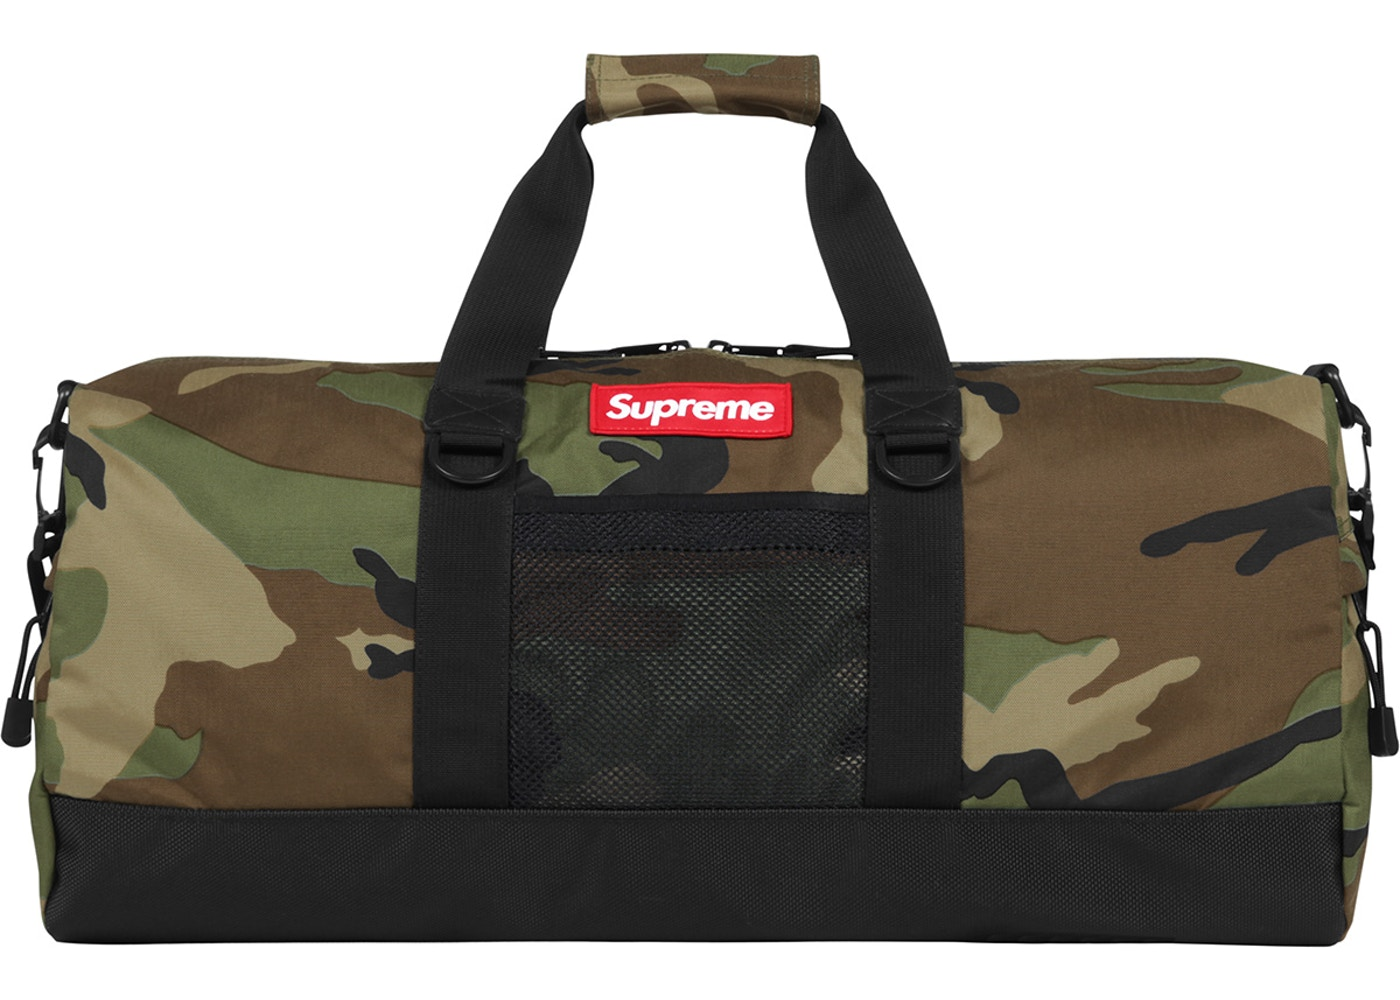 Image result for Supreme Camo Duffle Bag